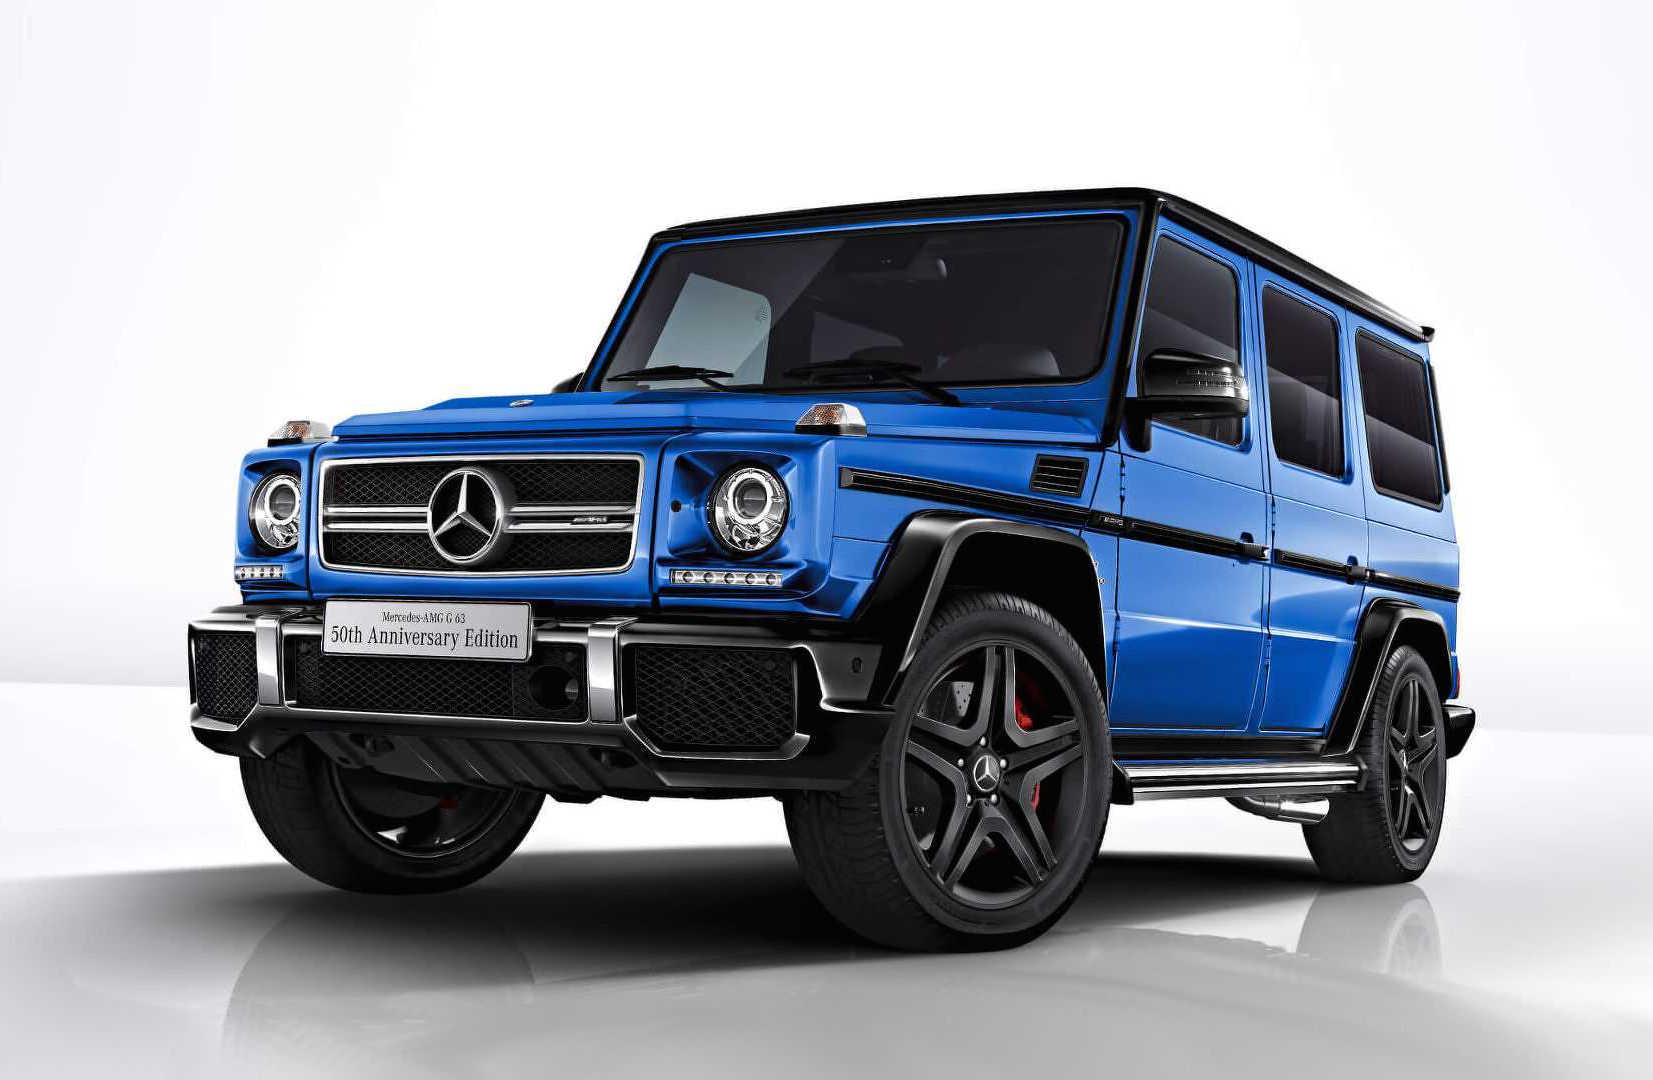 Mercedes Amg G 63 50th Anniversary Edition Announced For